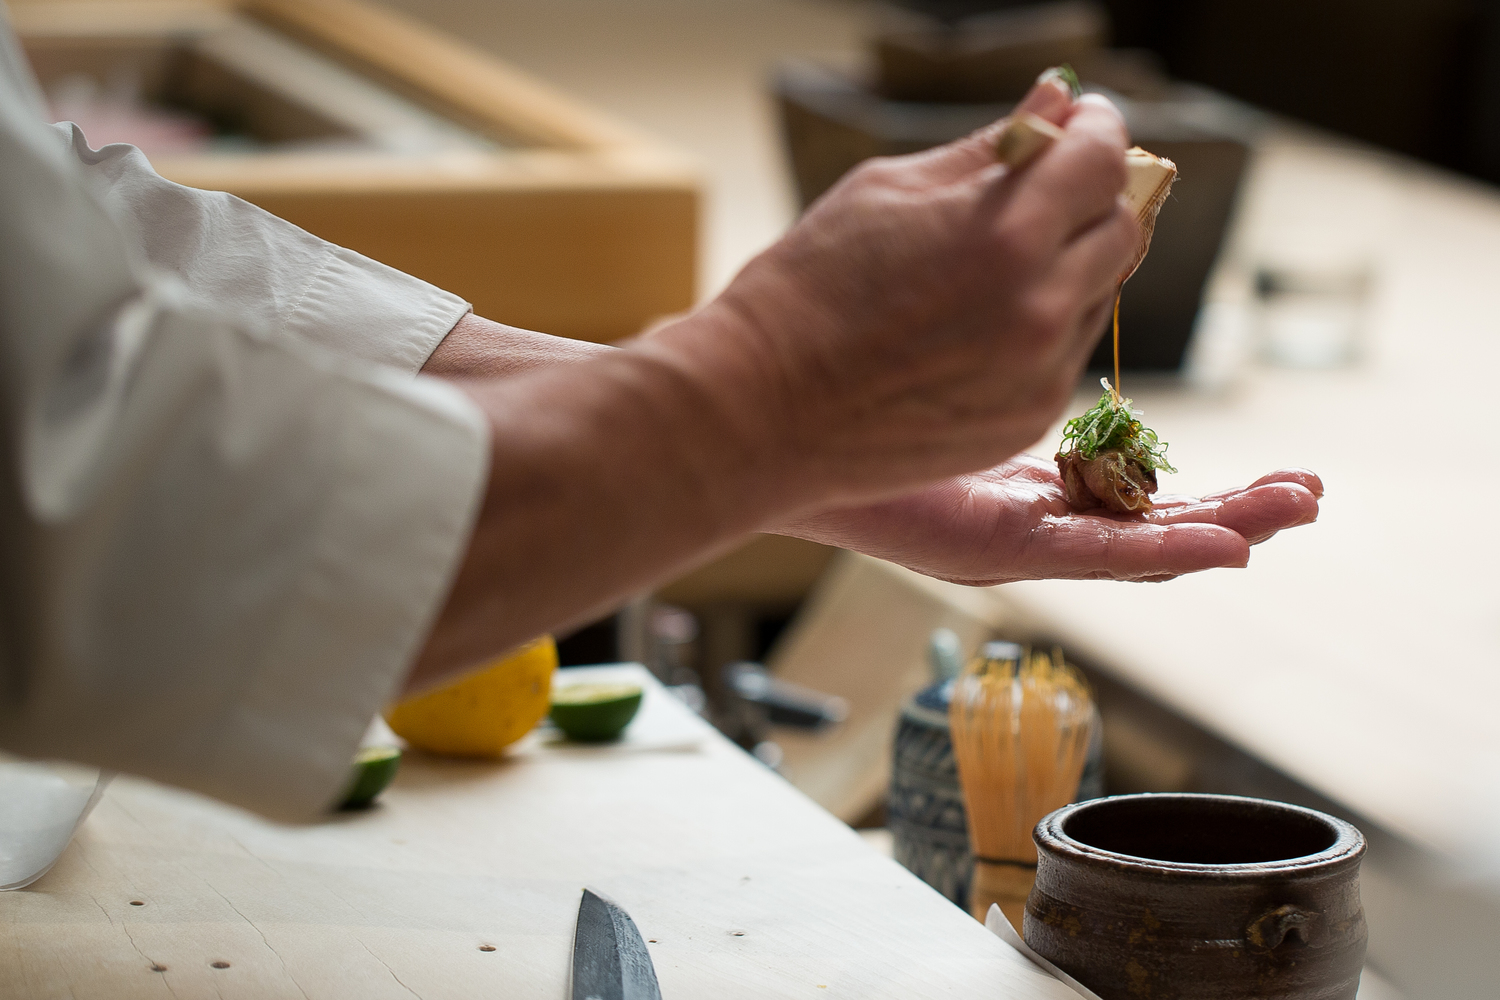 Chef Masa Takayama prepares sushi with his hands over a blond wood counter